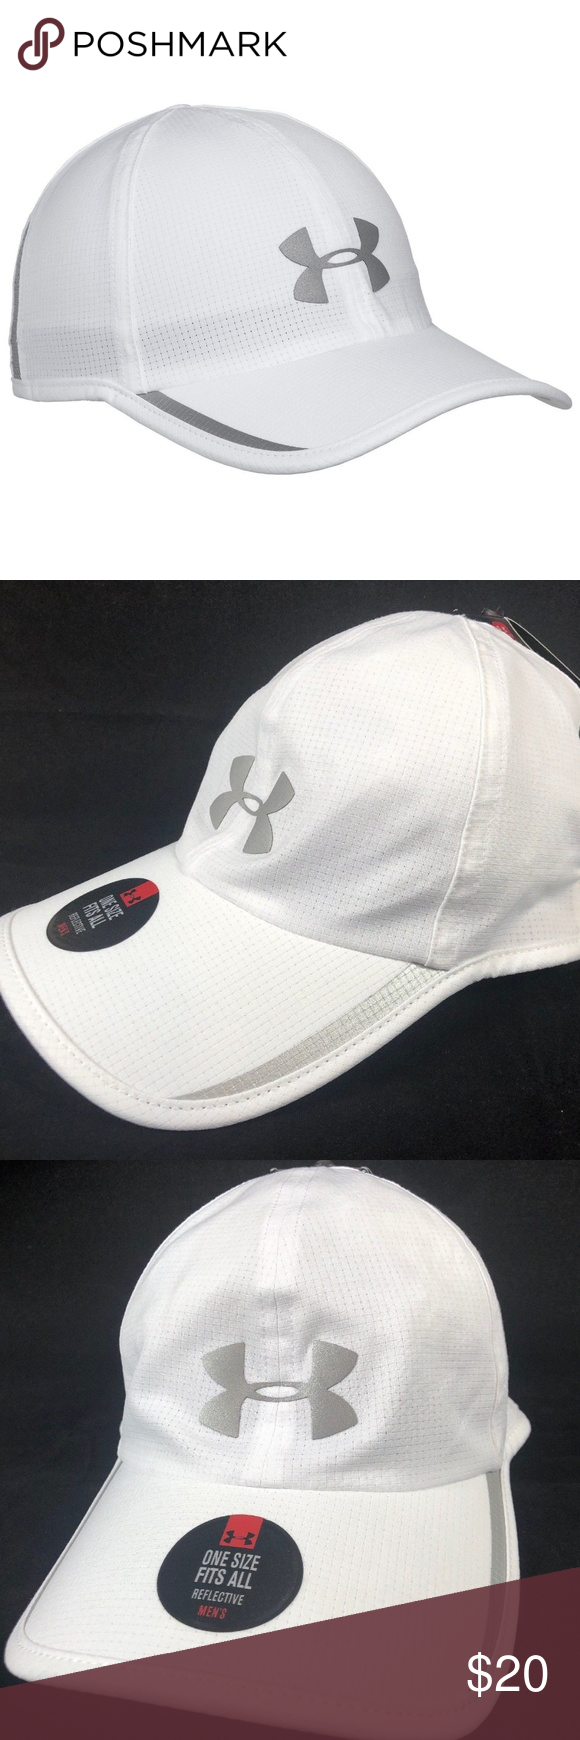 Under Armour Men s Shadow ArmourVent Hat Under Amour Shadow AV Baseball Cap  - UPF 30+ (For Men) Light as a feather and highly breathable 1f1fabfe668c